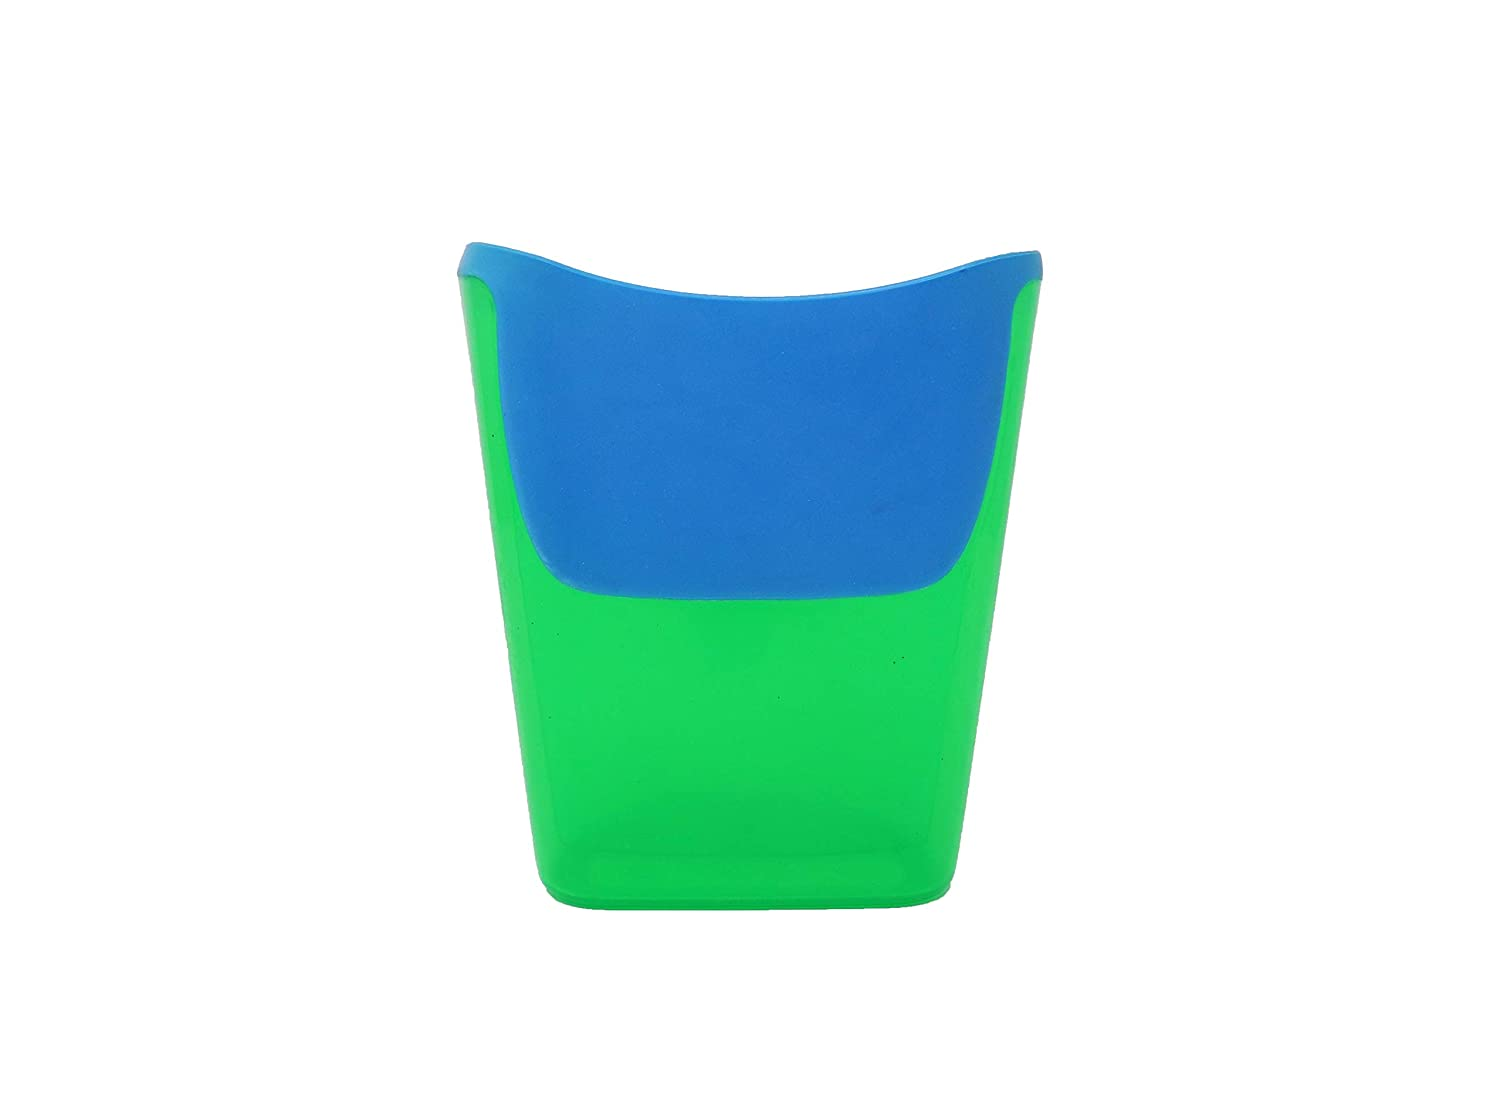 Shampoo Rinse Cup for Kids | Baby Bath Pail | Tear Free Baby Rinser Pail